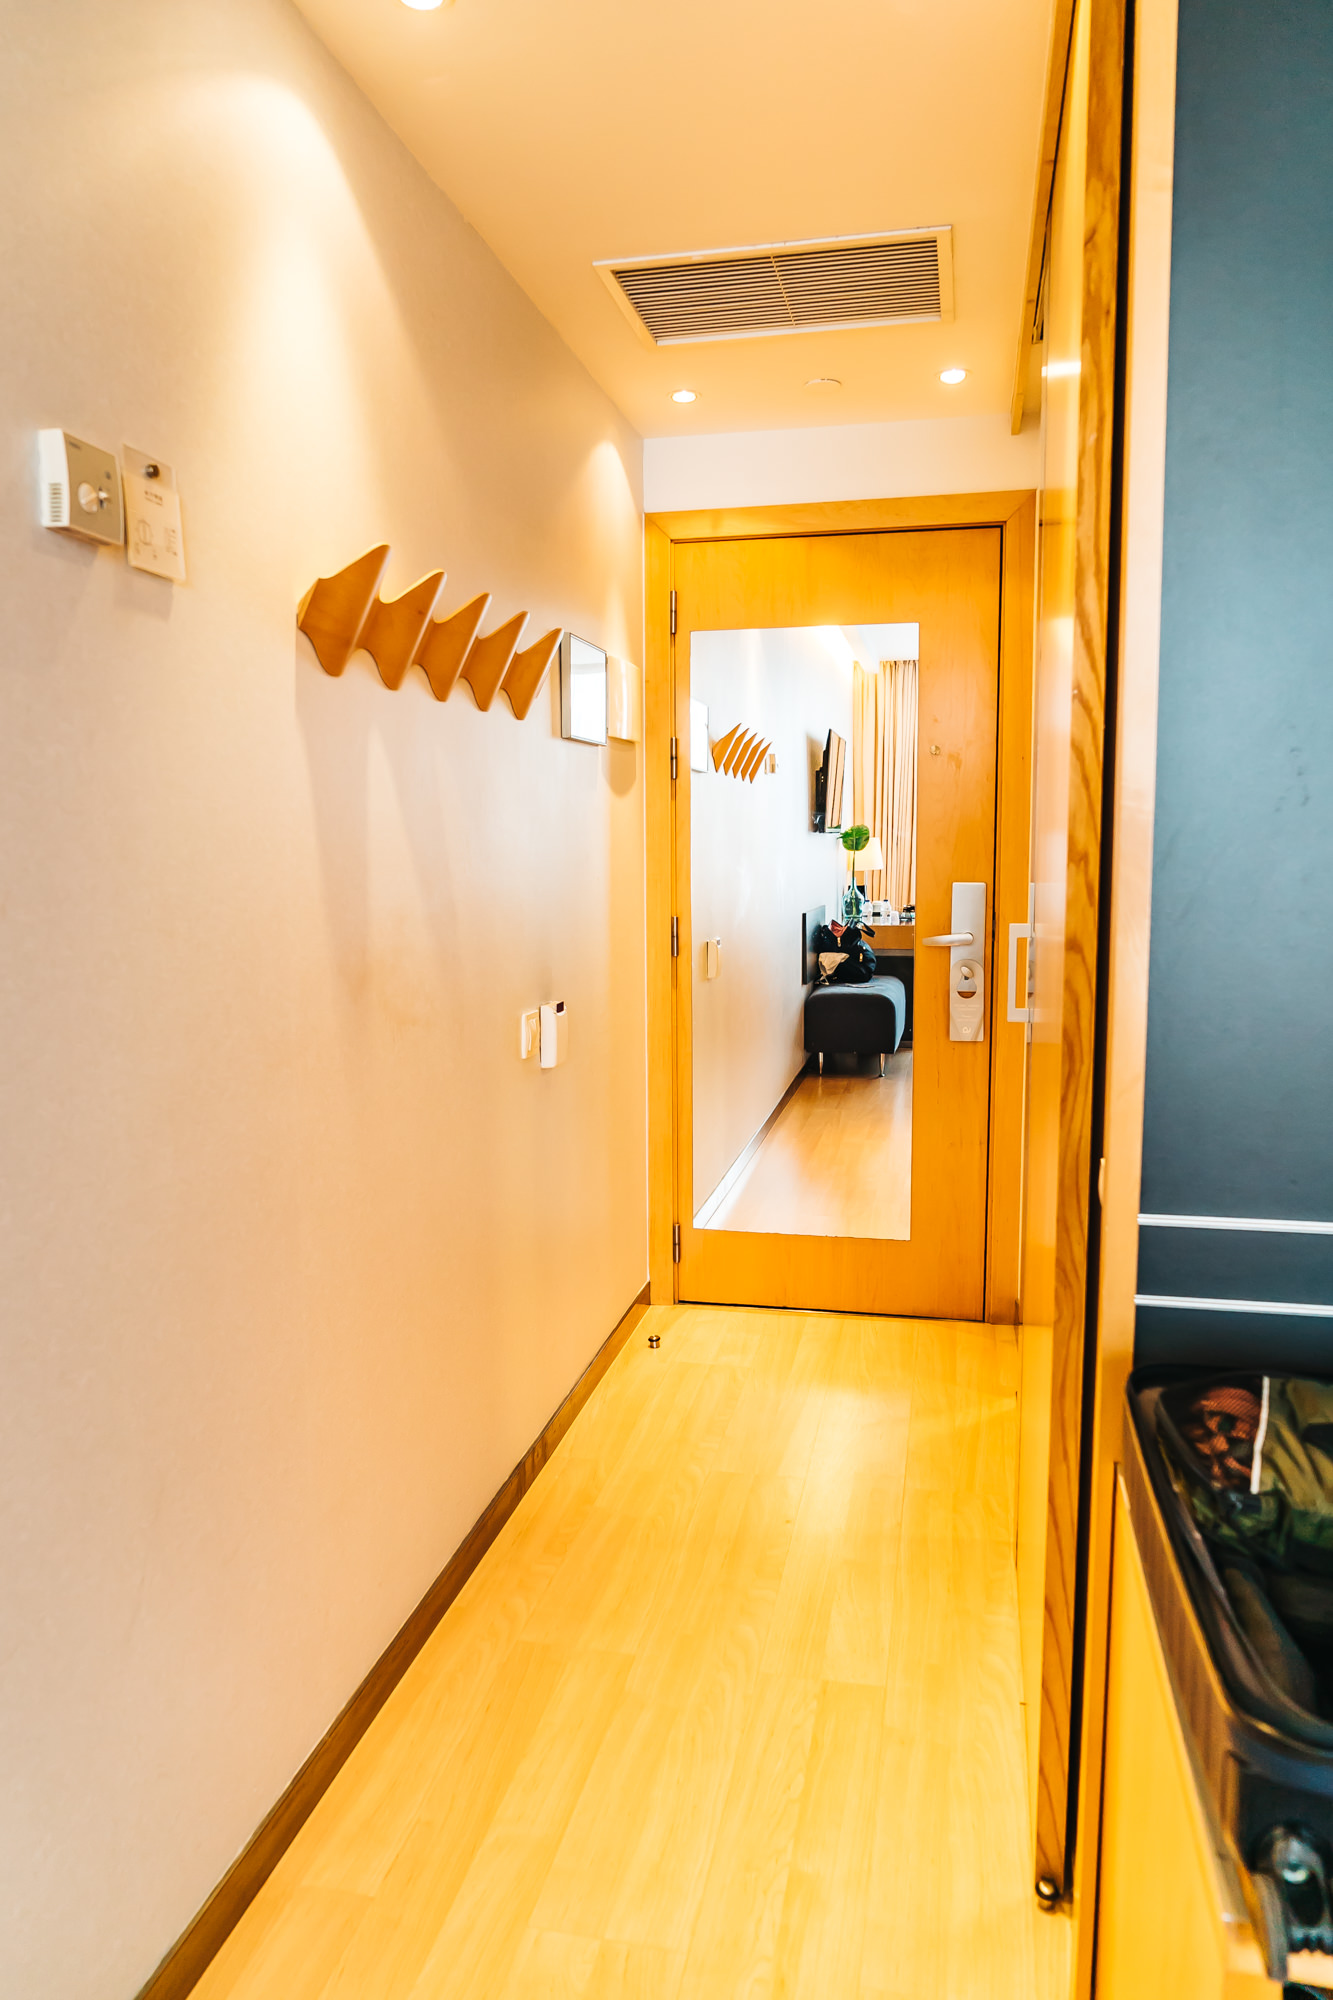 Nice hallway with large mirror and coat rack